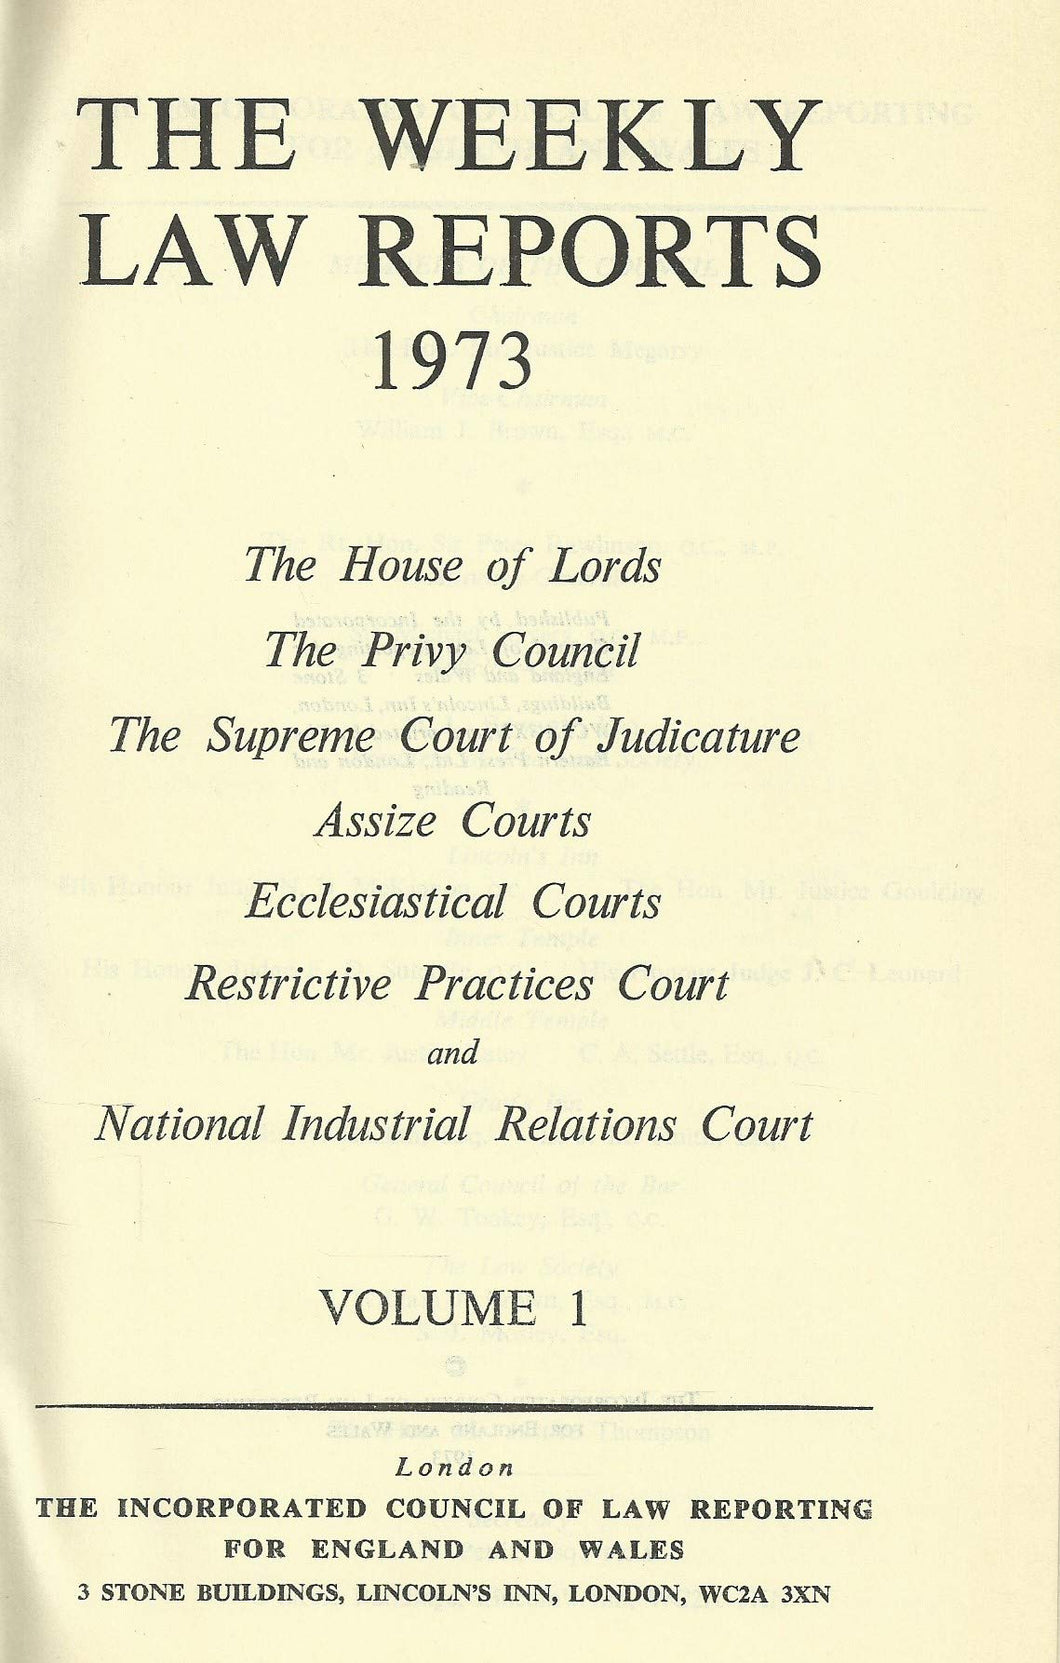 THE WEEKLY LAW REPORTS 1973: VOLUME I.